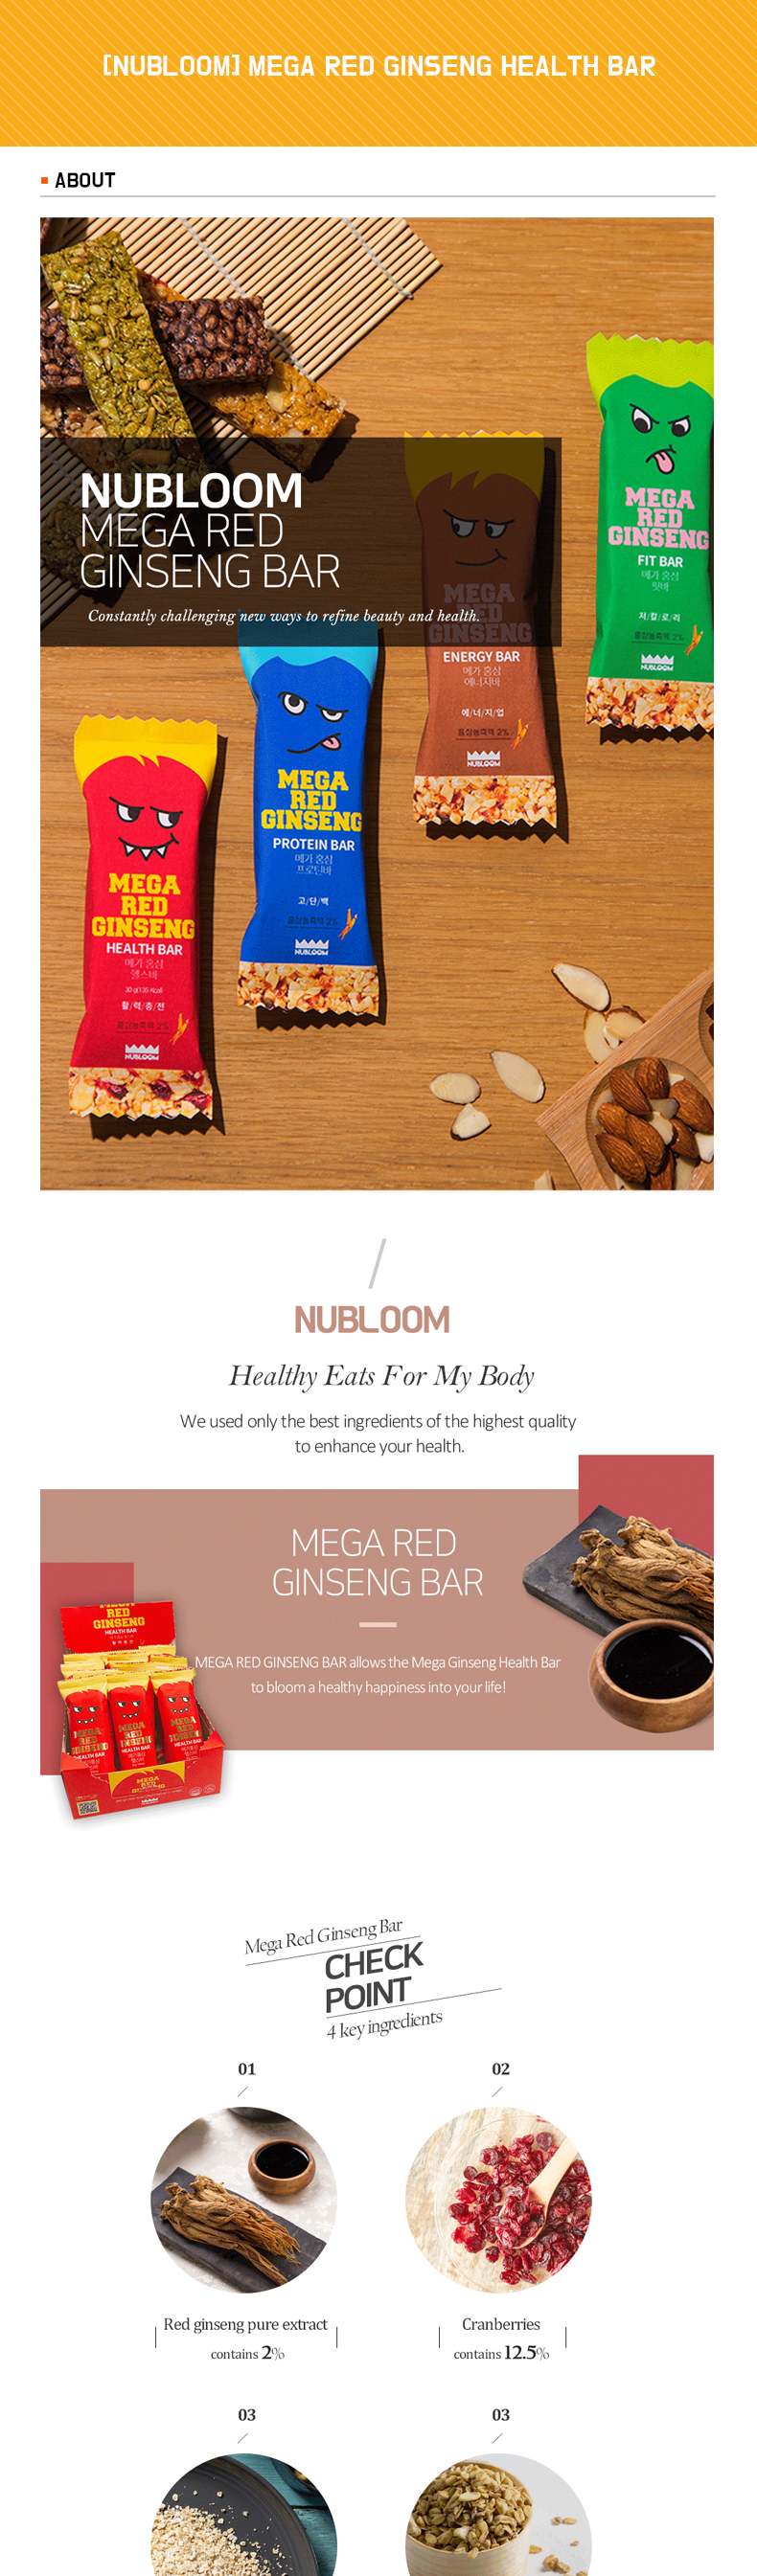 [NUBLOOM] MEGA RED GINSENG HEALTH BAR